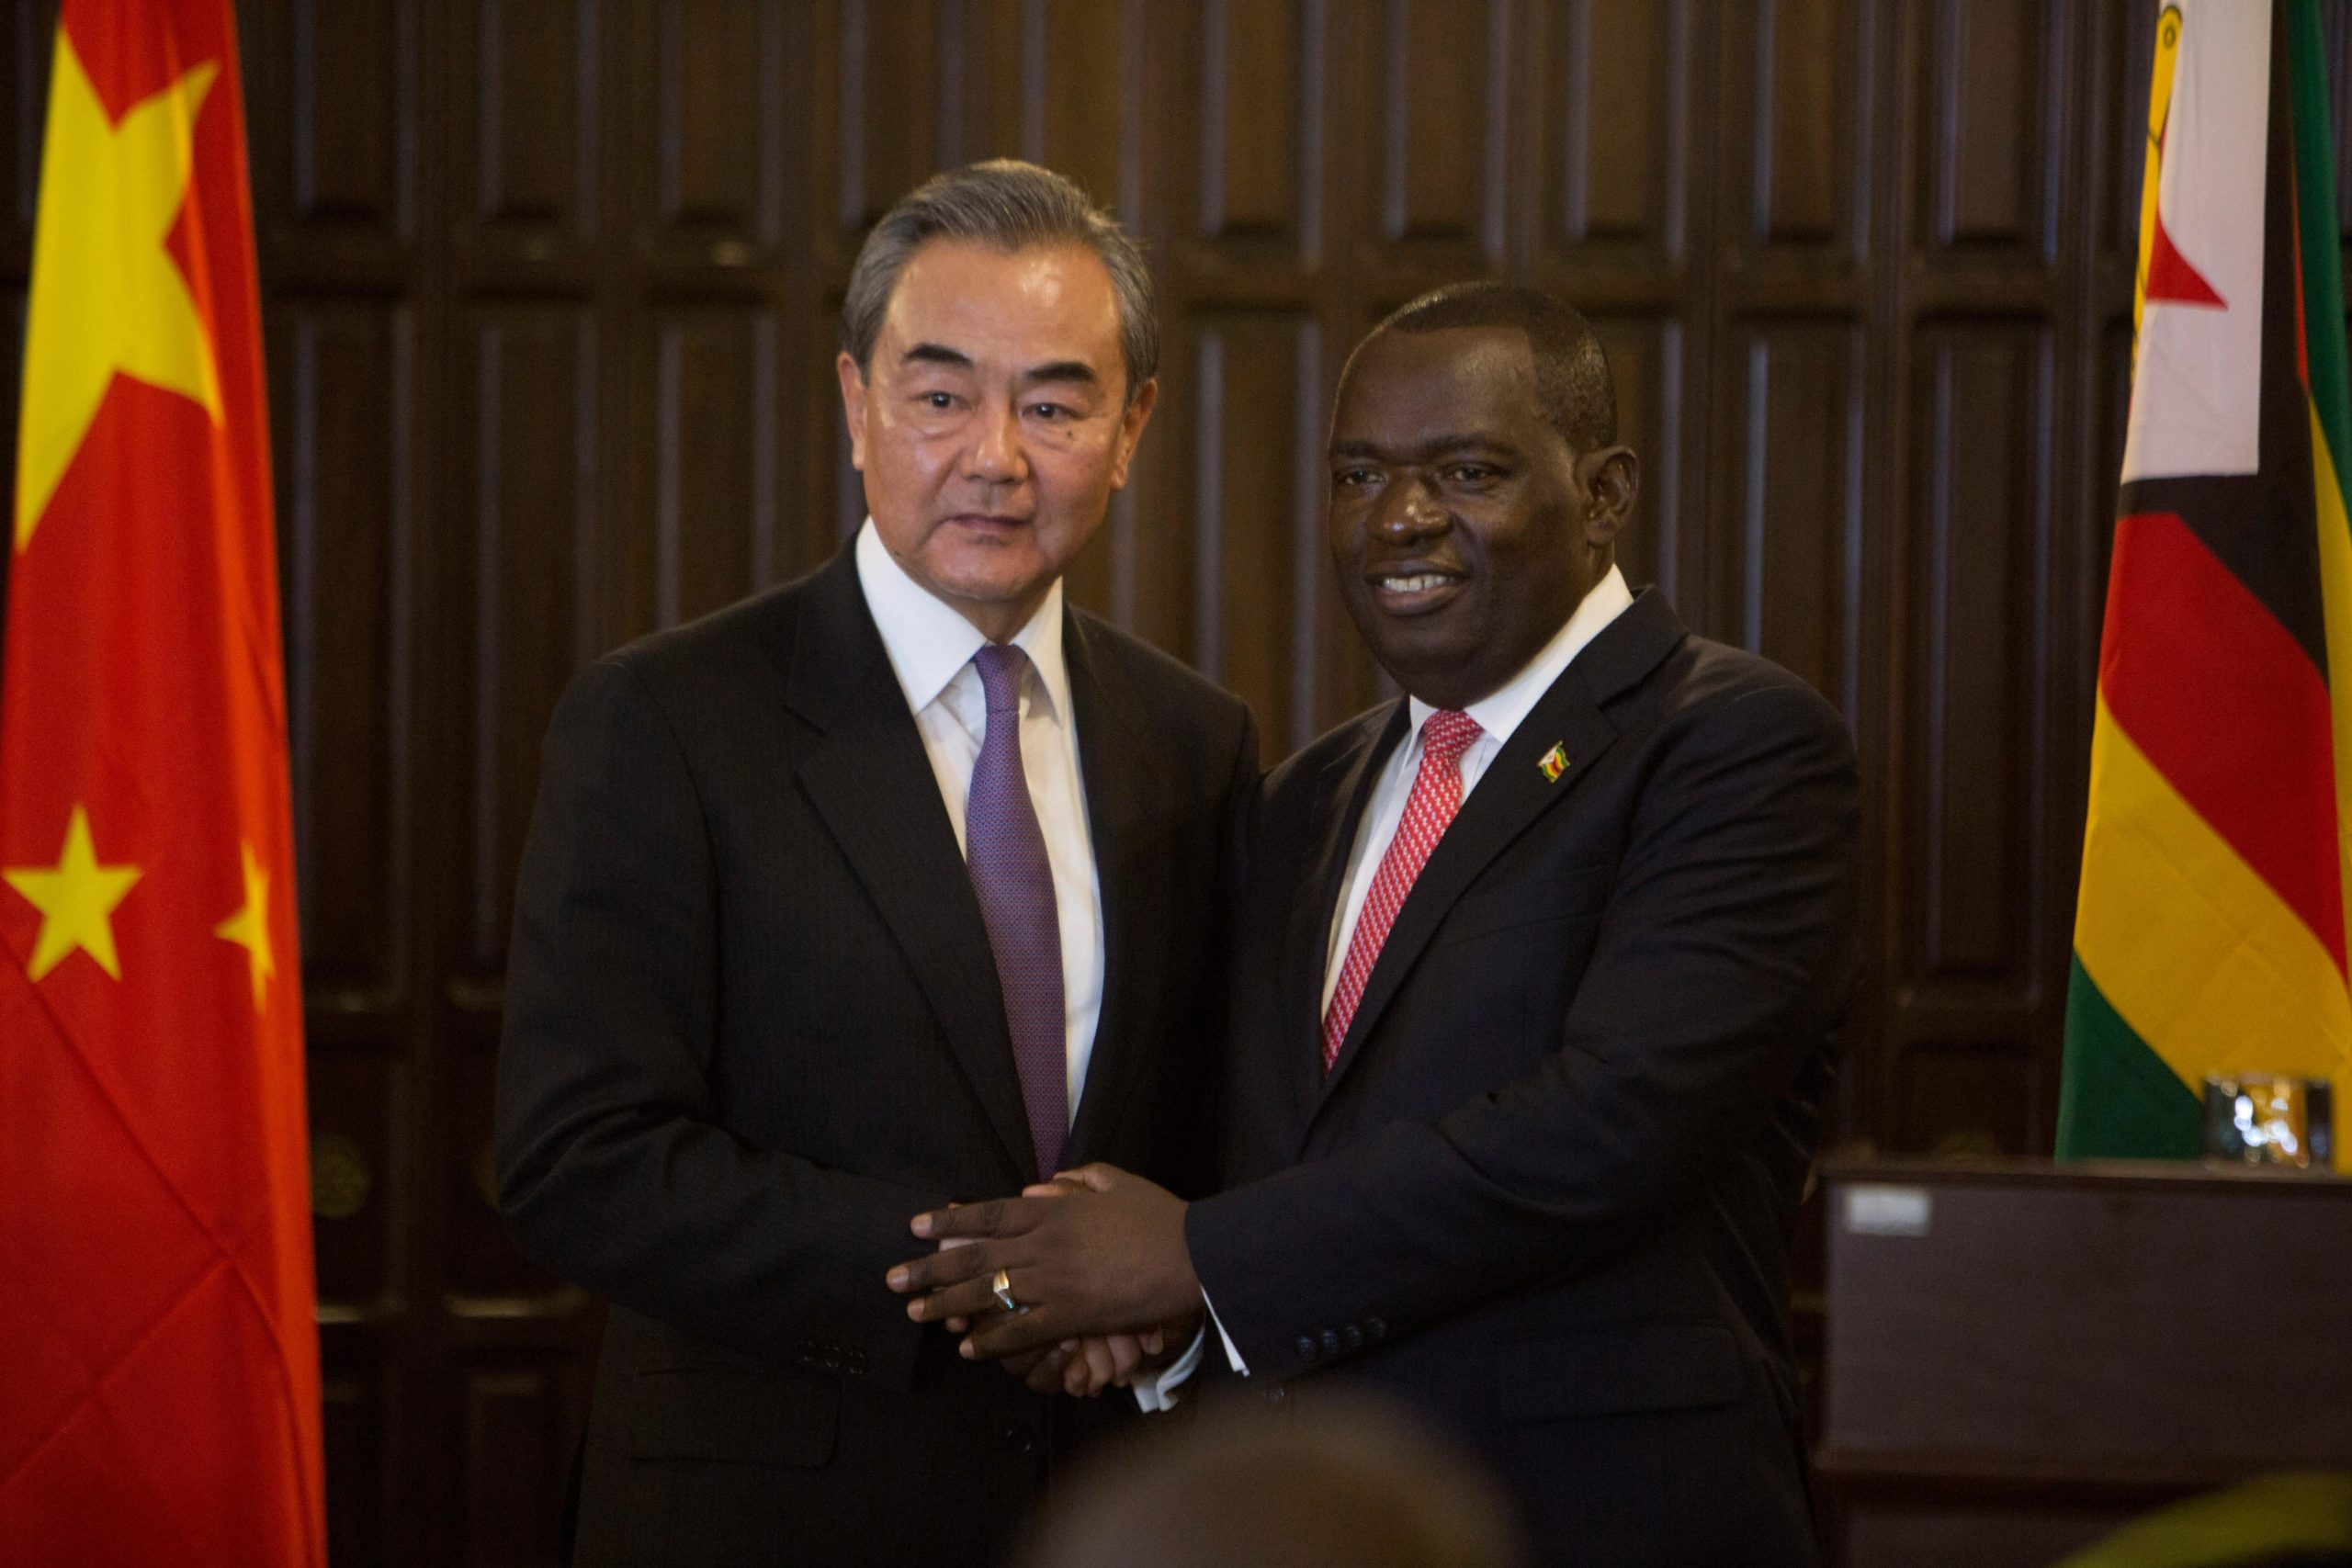 China's currency swap deal with Zimbabwe could backfire